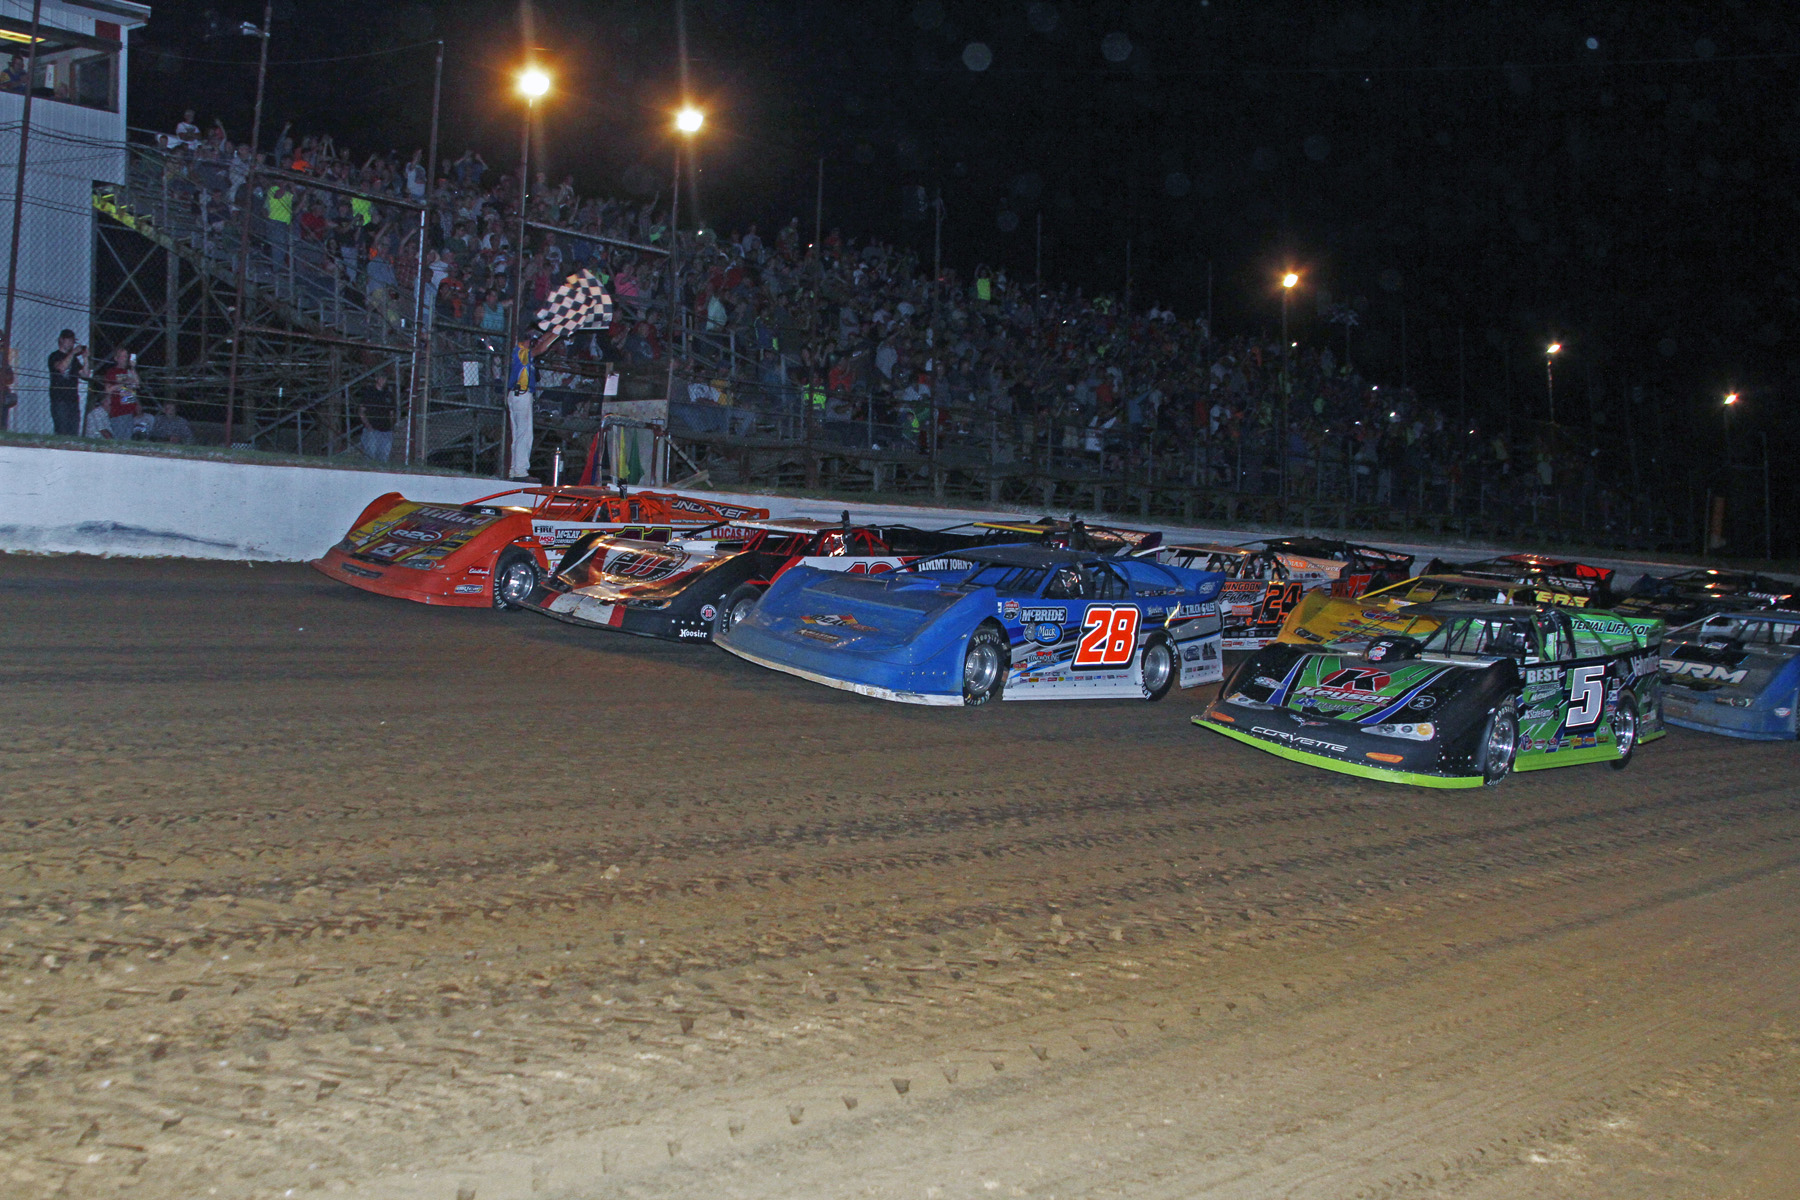 4 wide Lates